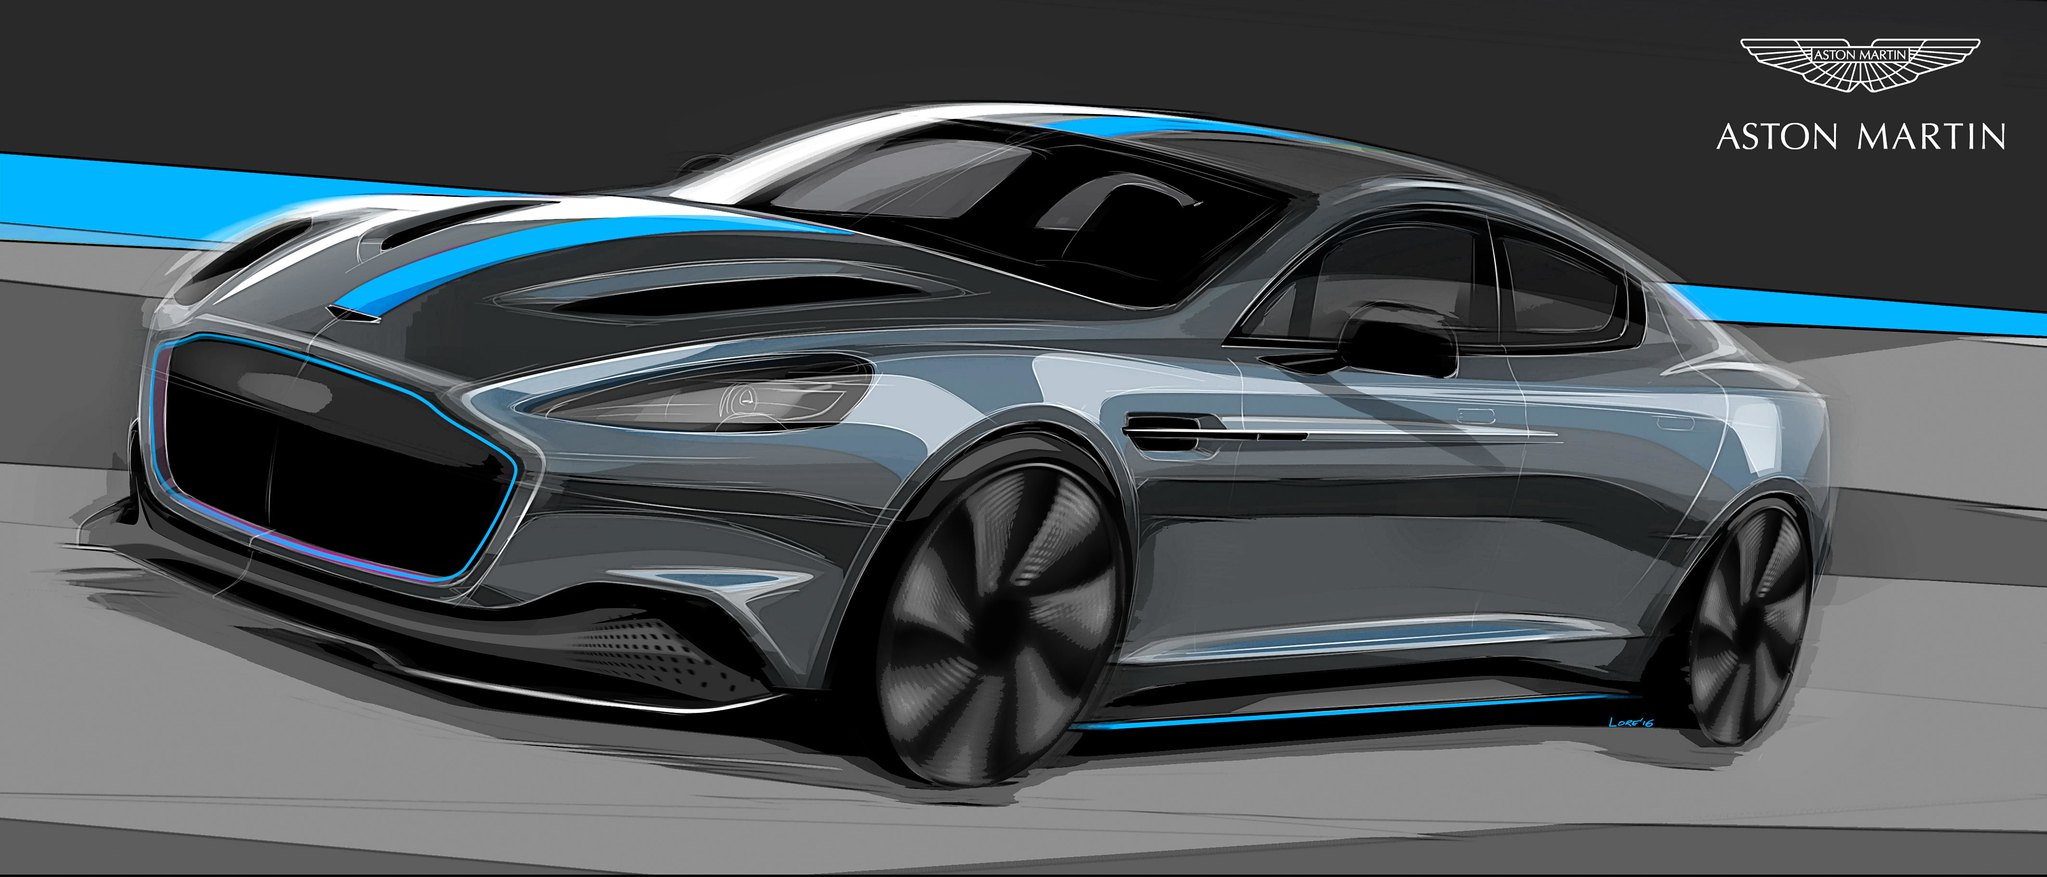 Aston Martin confirms production of RapidE